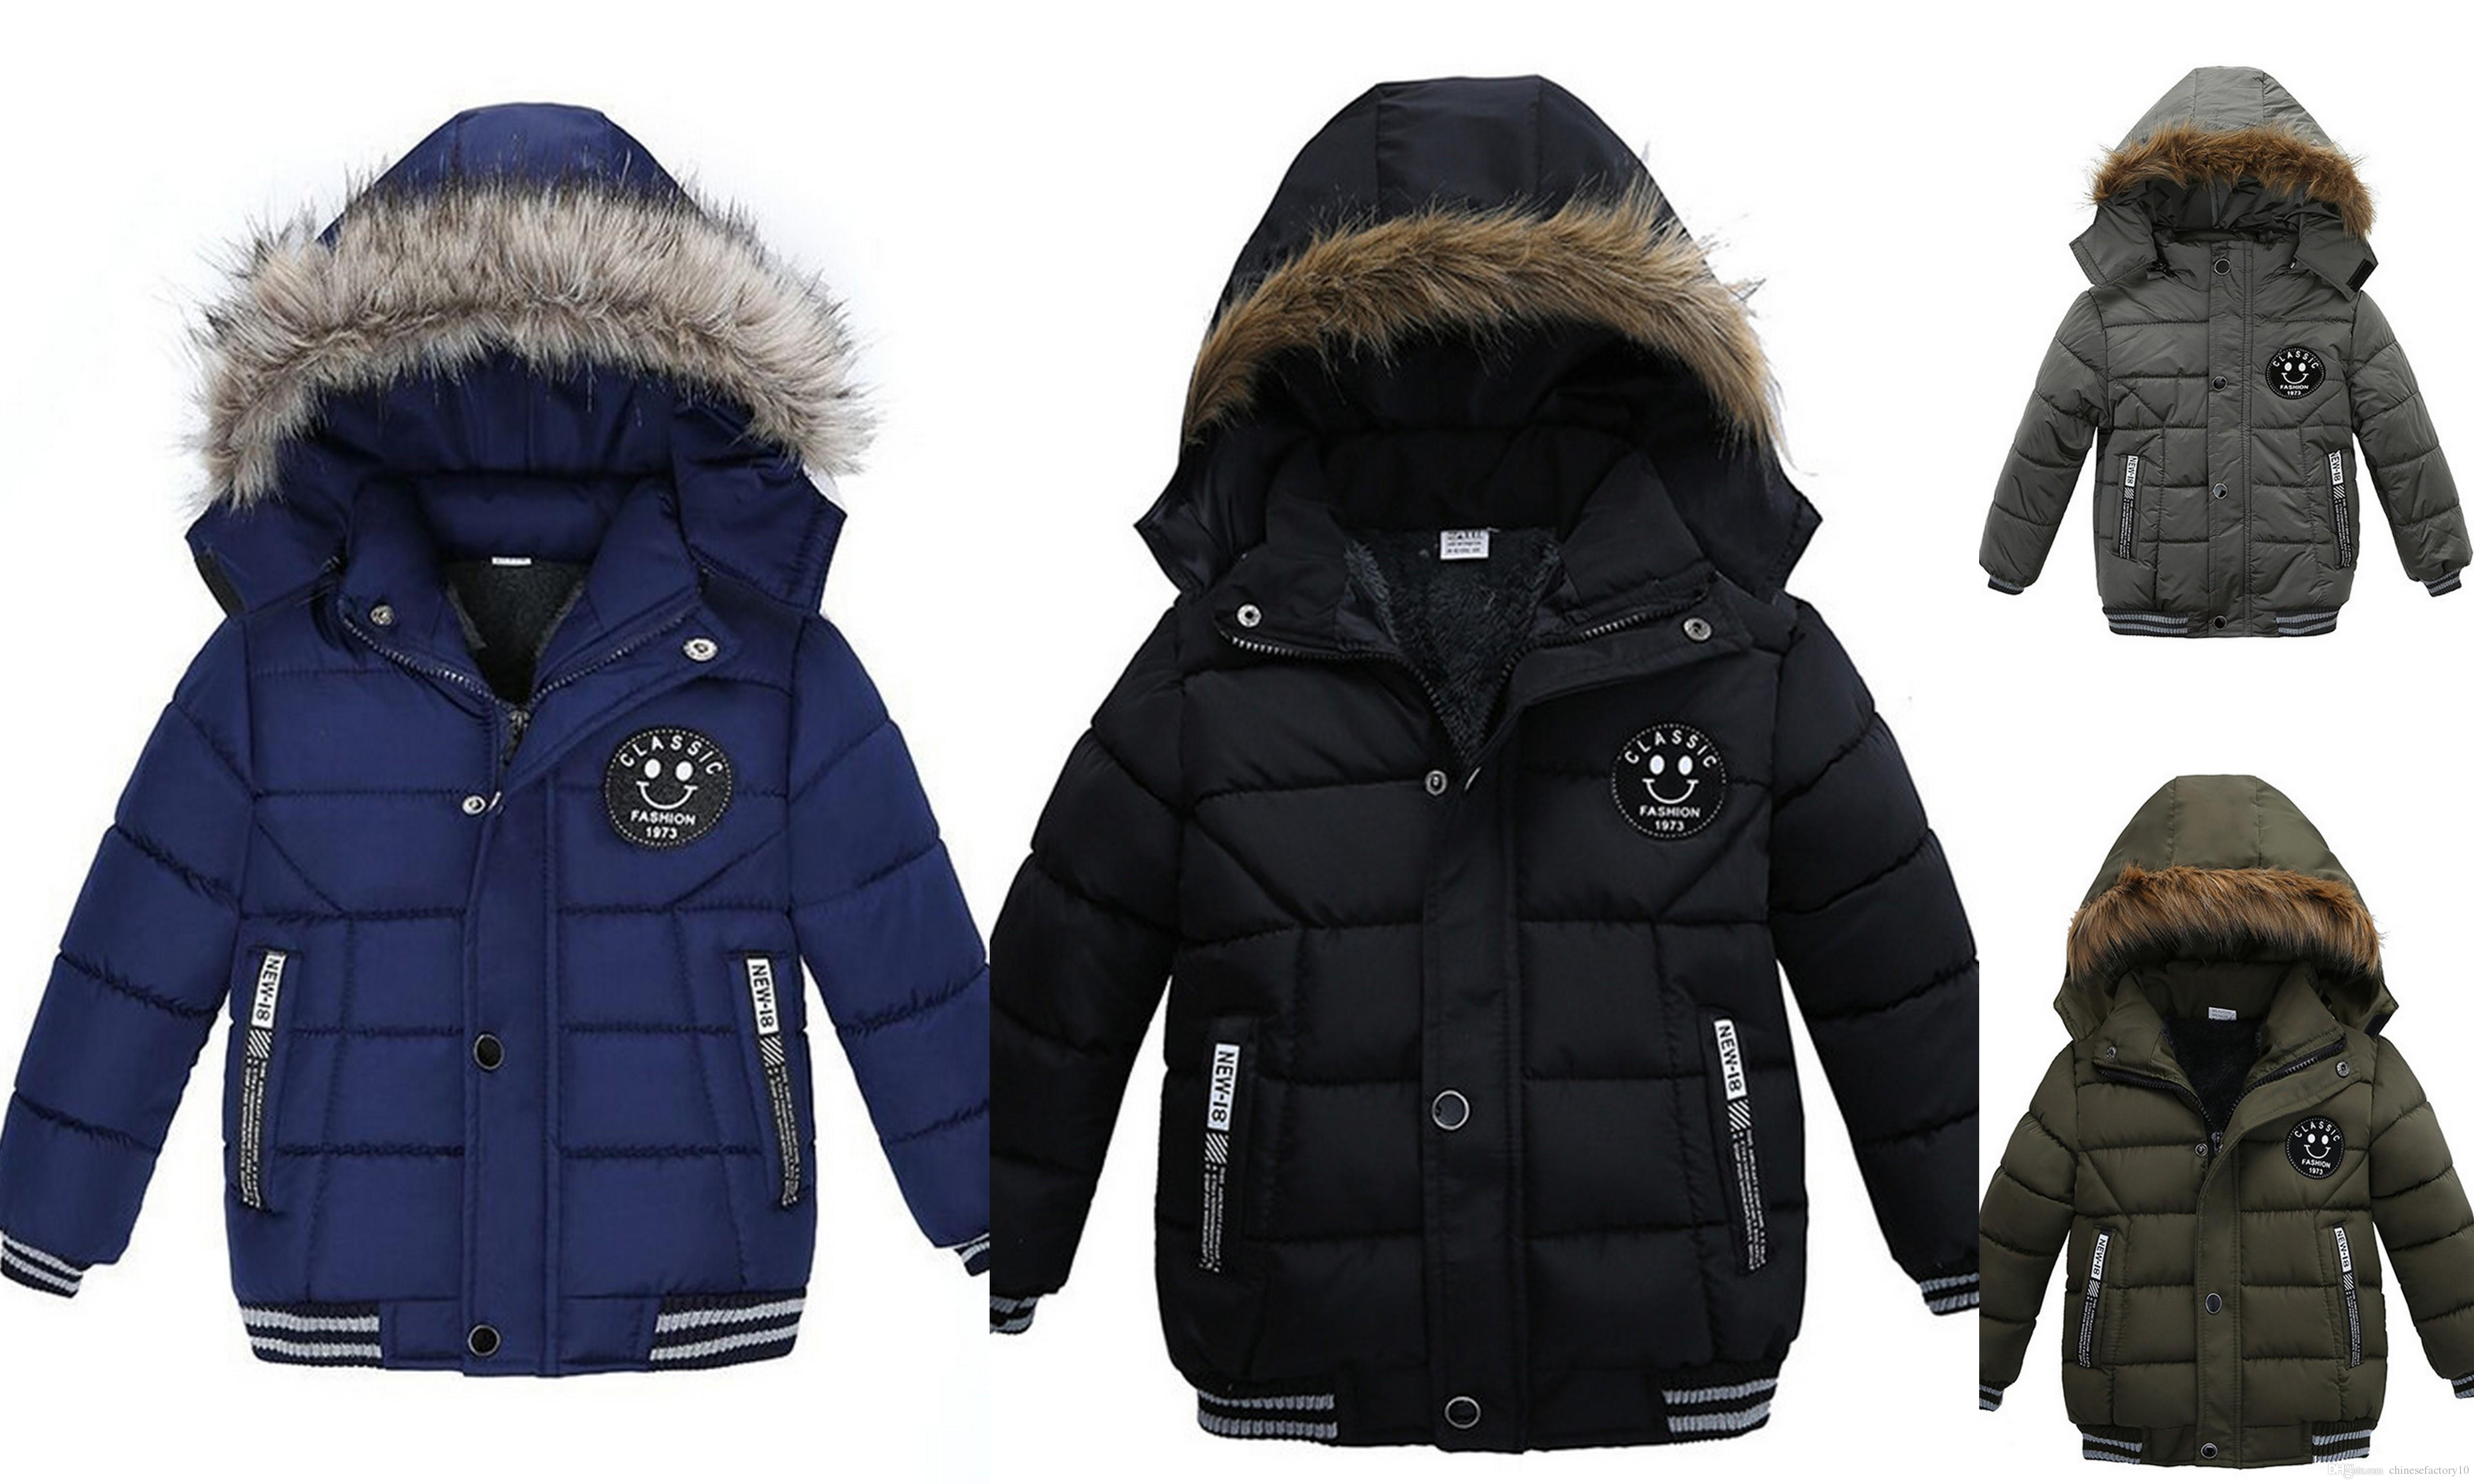 special buy cheap price dirt cheap Boys Korean Thick Winter Cotton Padded Jacket Winter Warm Baby Boys  Clothing Outwear Coats Youth Boys Winter Jackets Lightweight Jackets For  Kids From ...